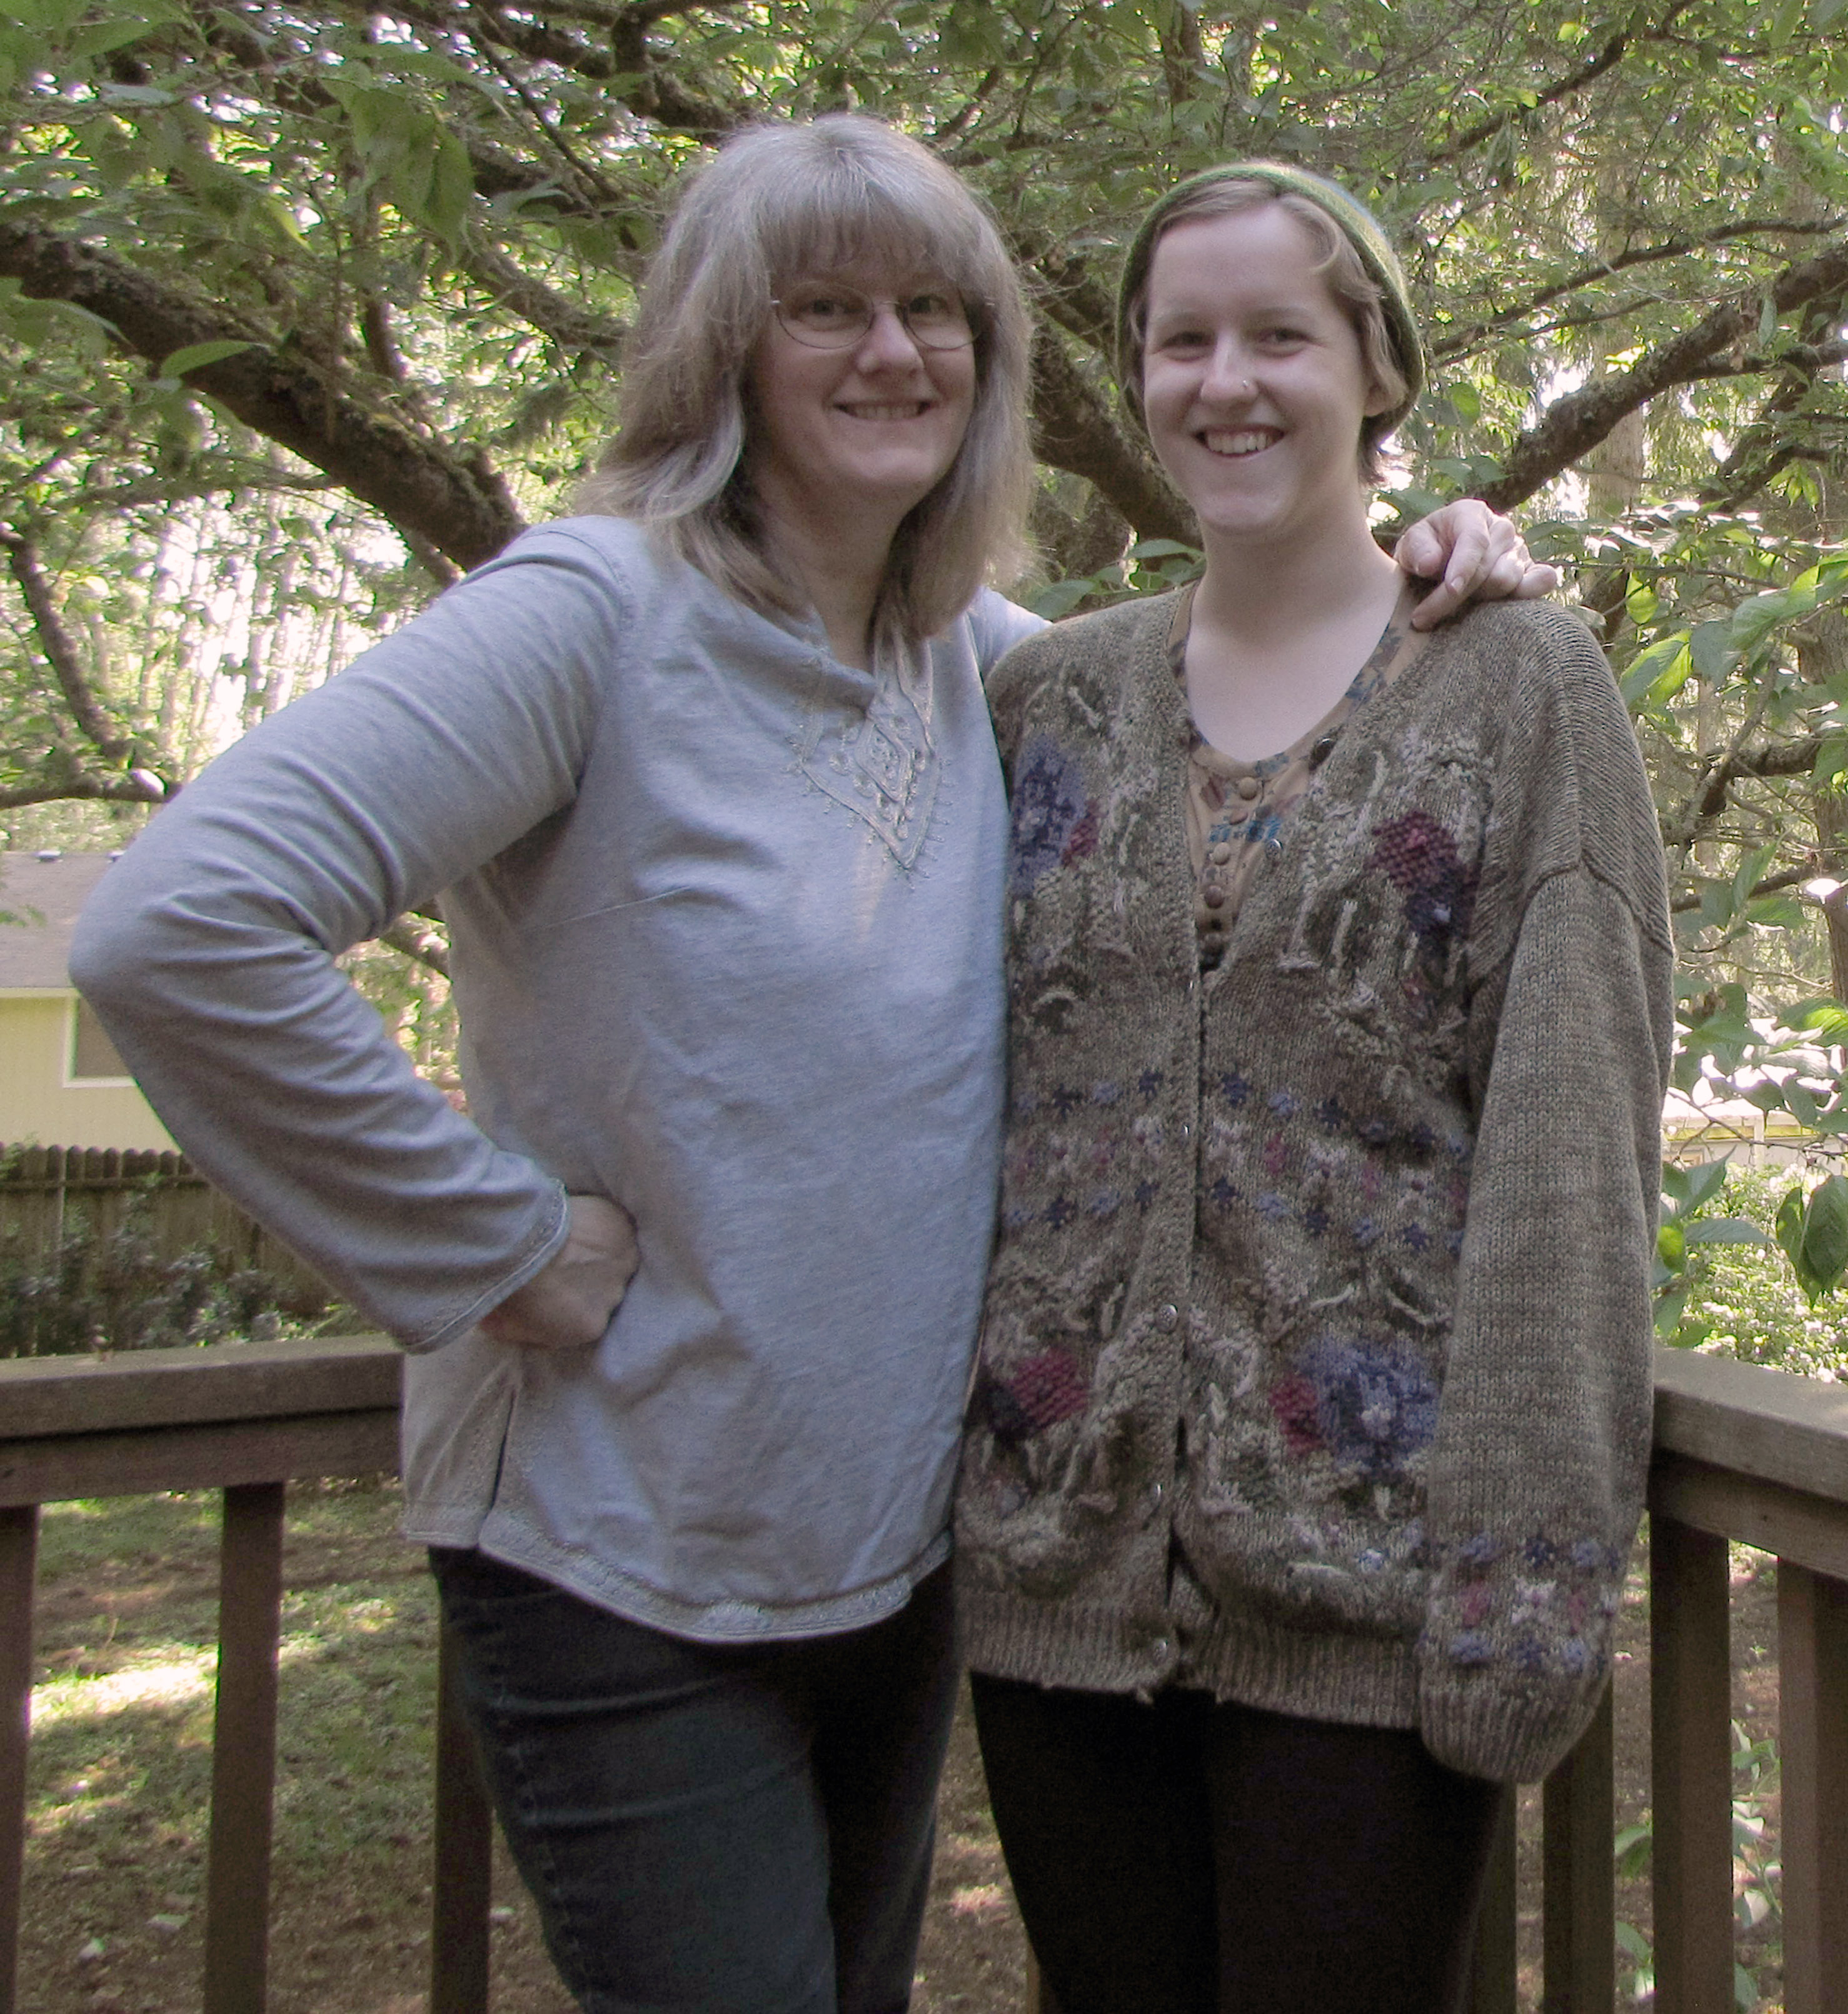 <i>Podcast: What's Up Bainbridge:</i> <br>Sat May 16th hear this Mother-Daughter story of a 1500 mile walk to remember